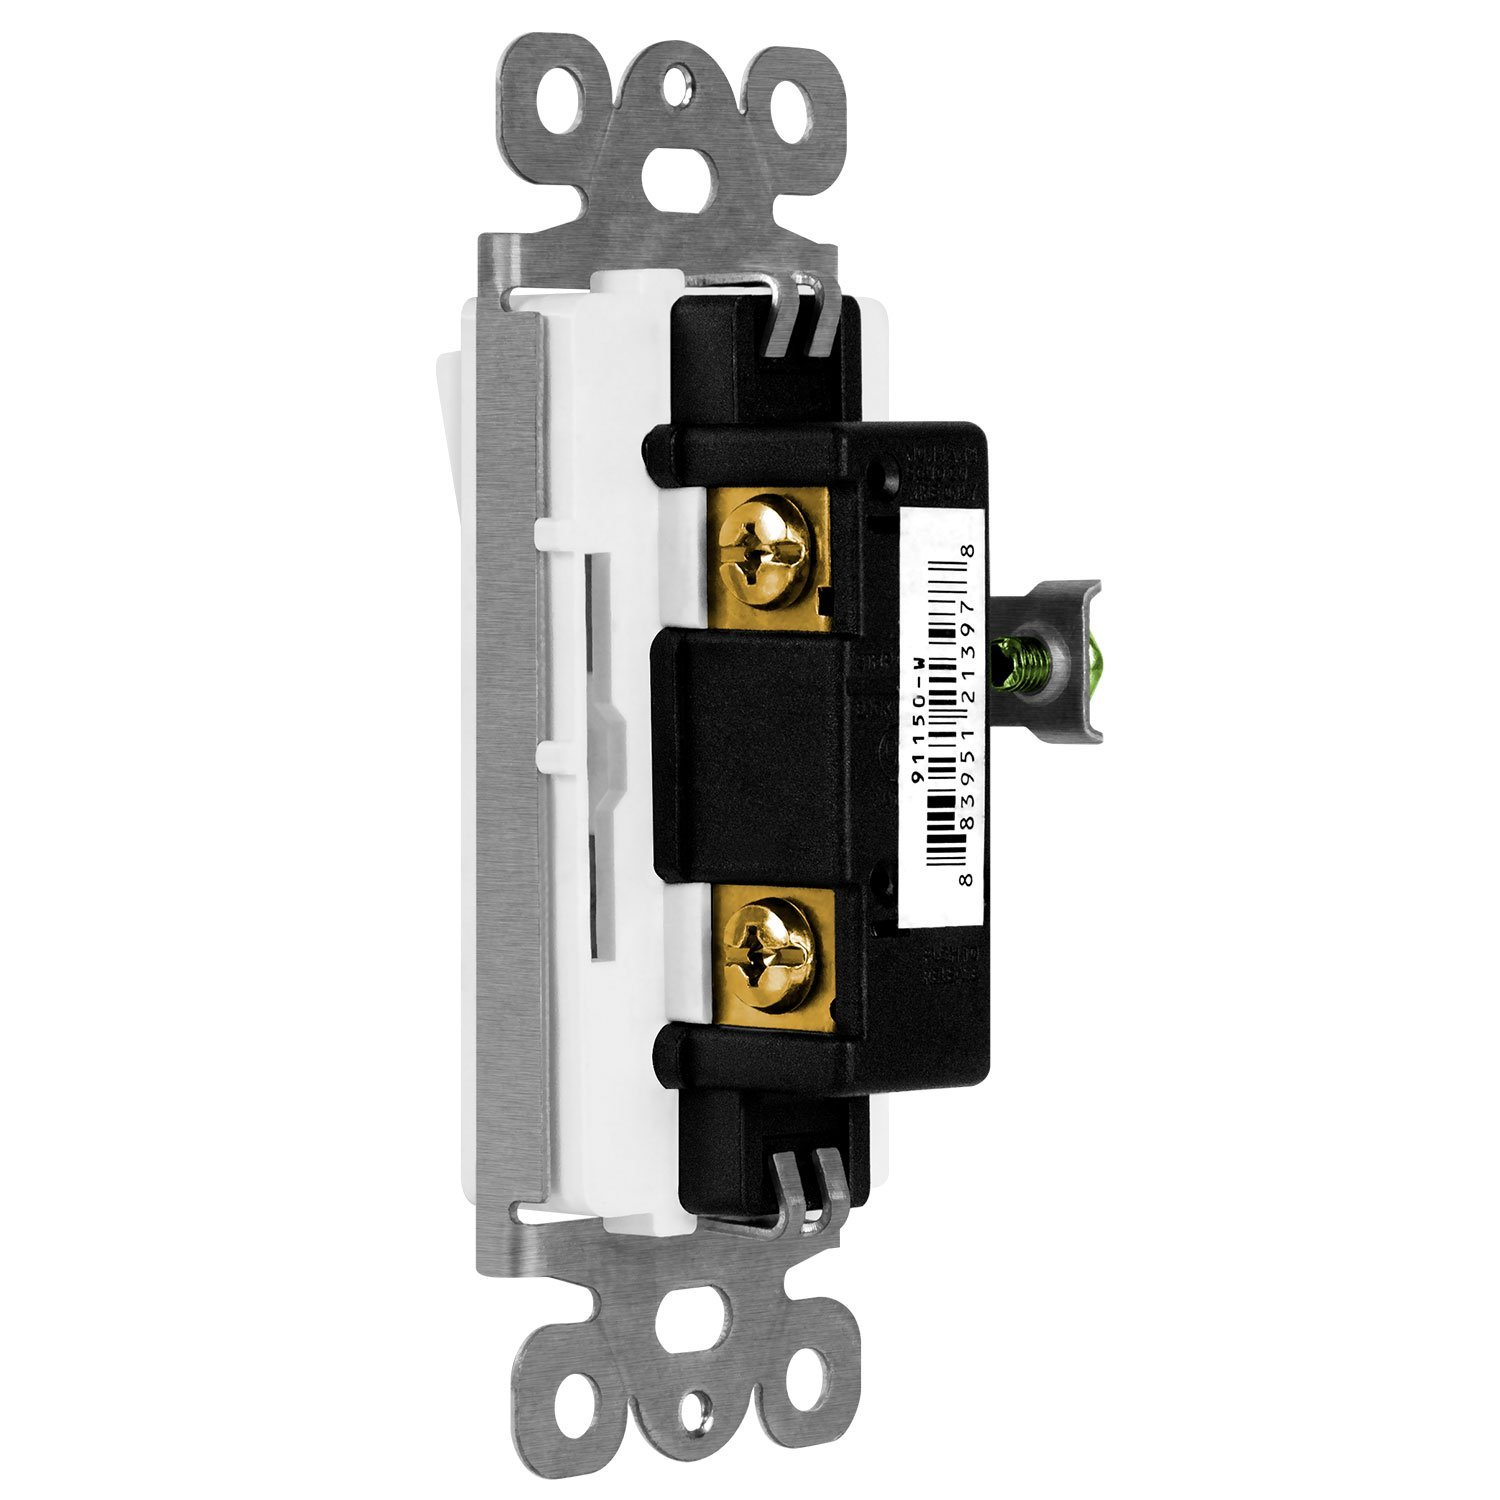 10 Pack 15A 120V//277V 3 Wire ENERLITES Decorator Paddle Rocker Light Switch UL Listed Grounding Screw Residential Grade 91150-W-10PCS Single Pole White